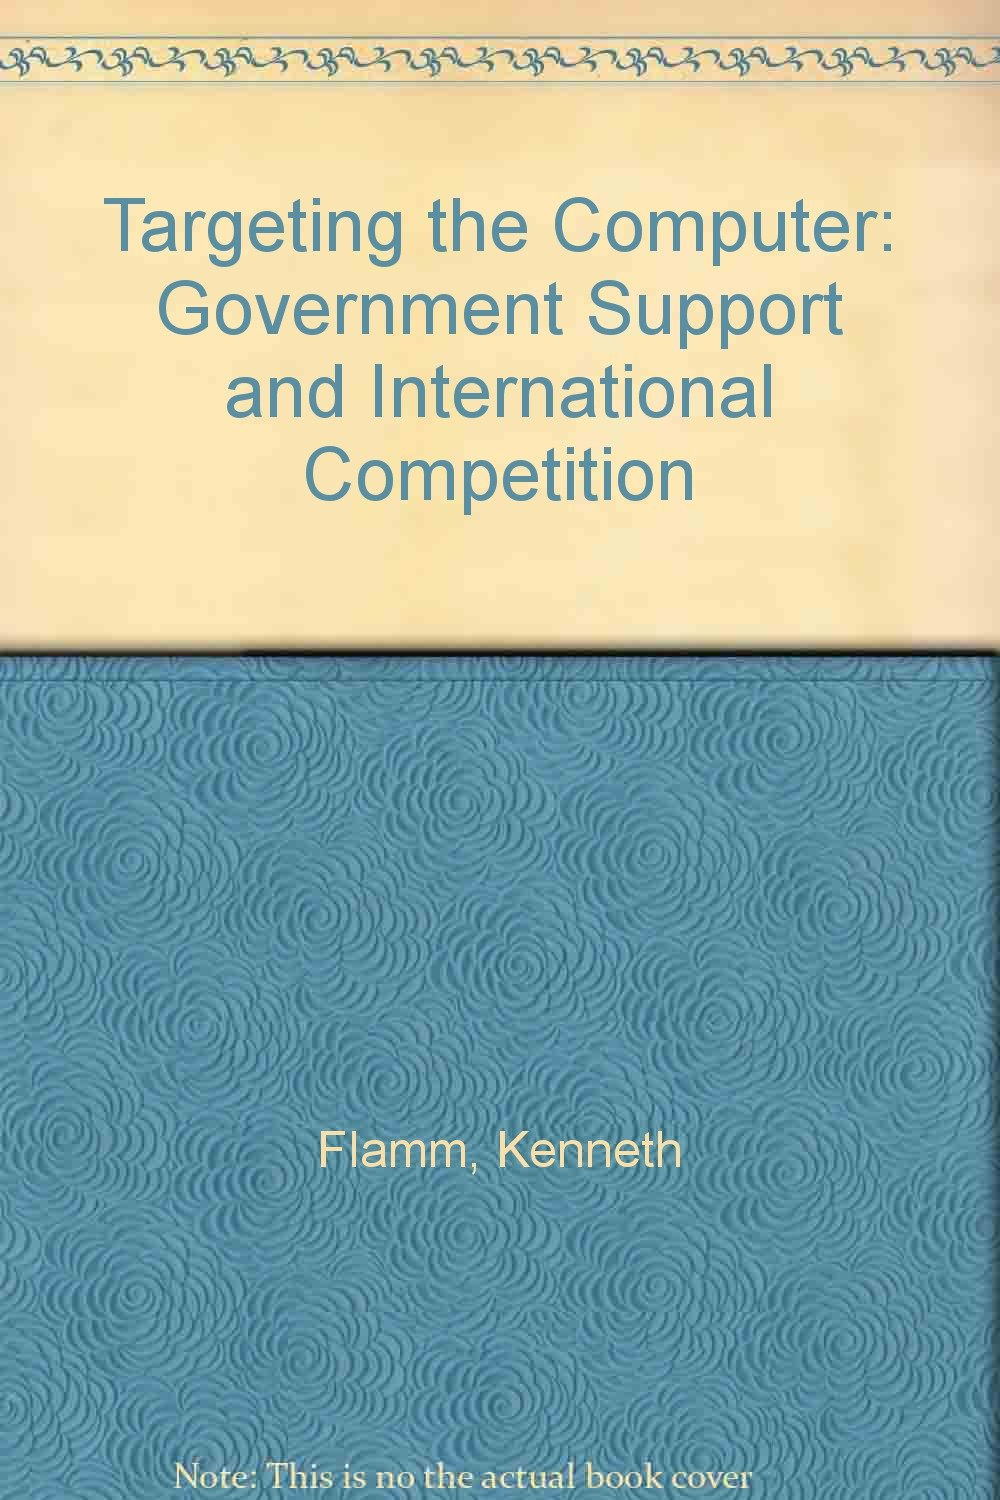 Targeting the Computer: Government Support and International Competition